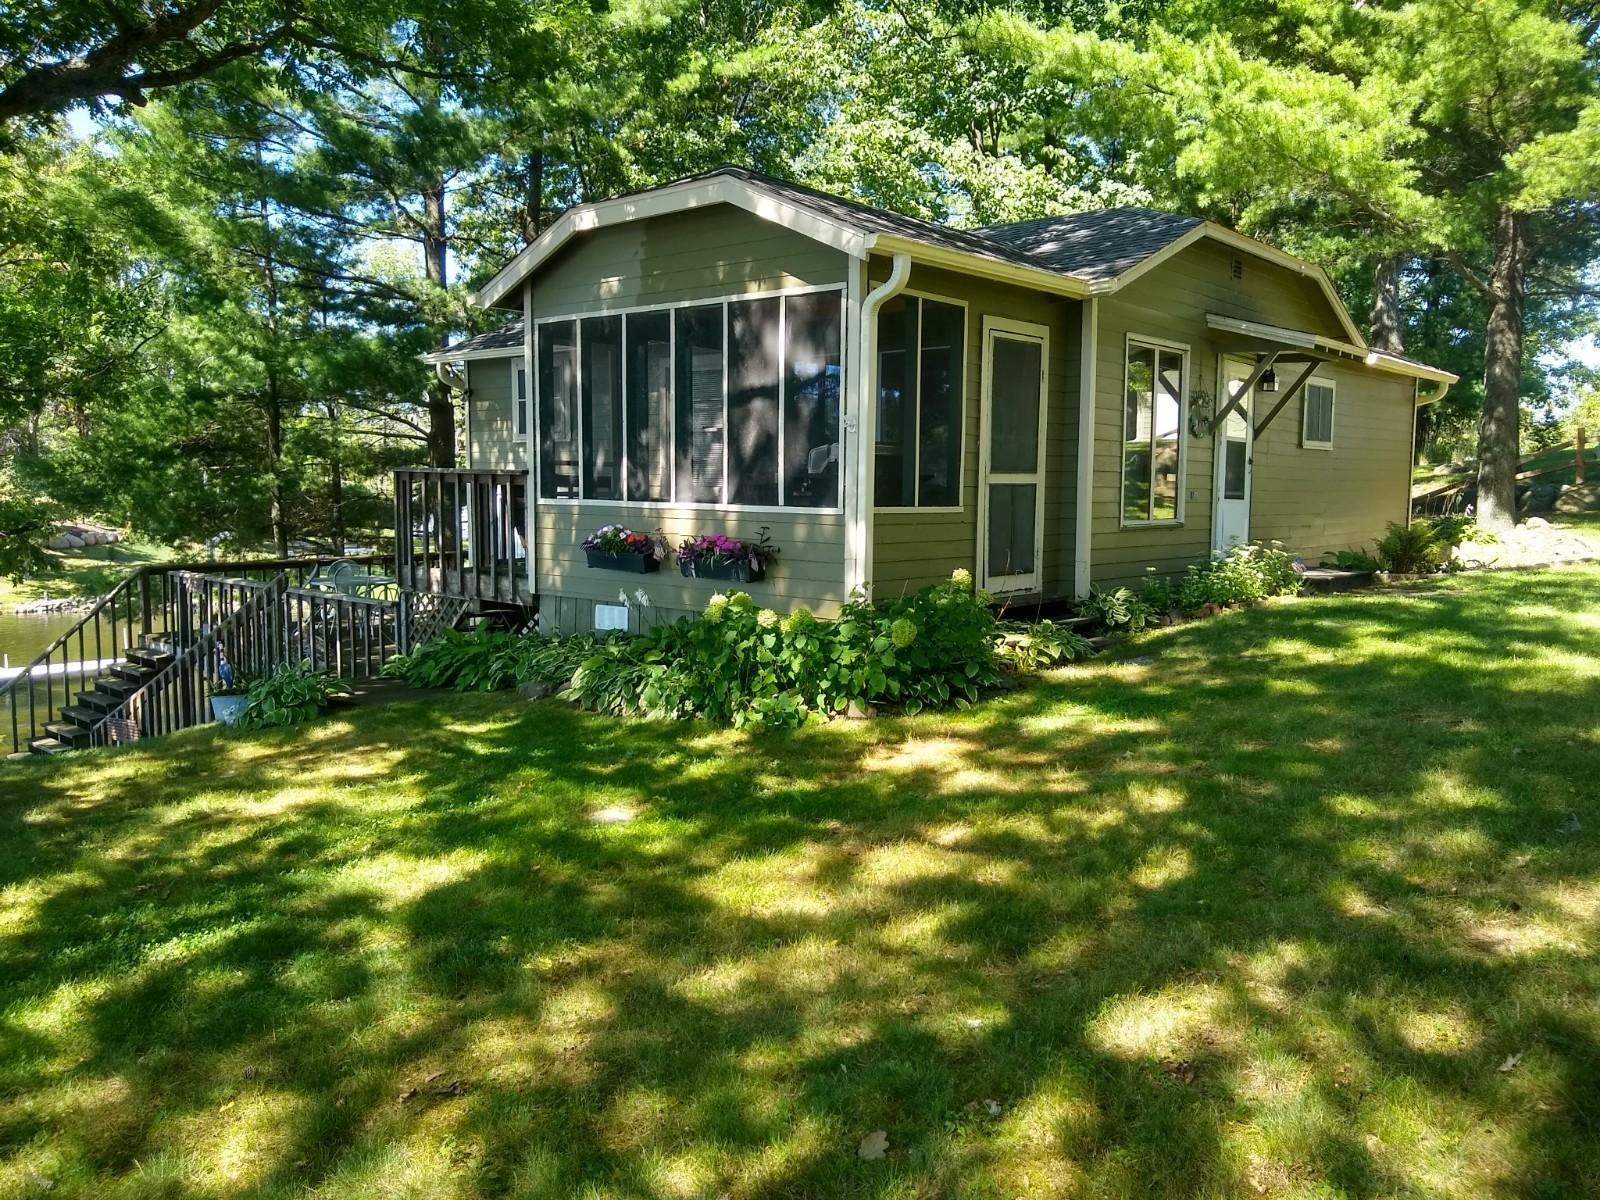 92 160th Avenue #B Property Photo - Beaver Twp, WI real estate listing